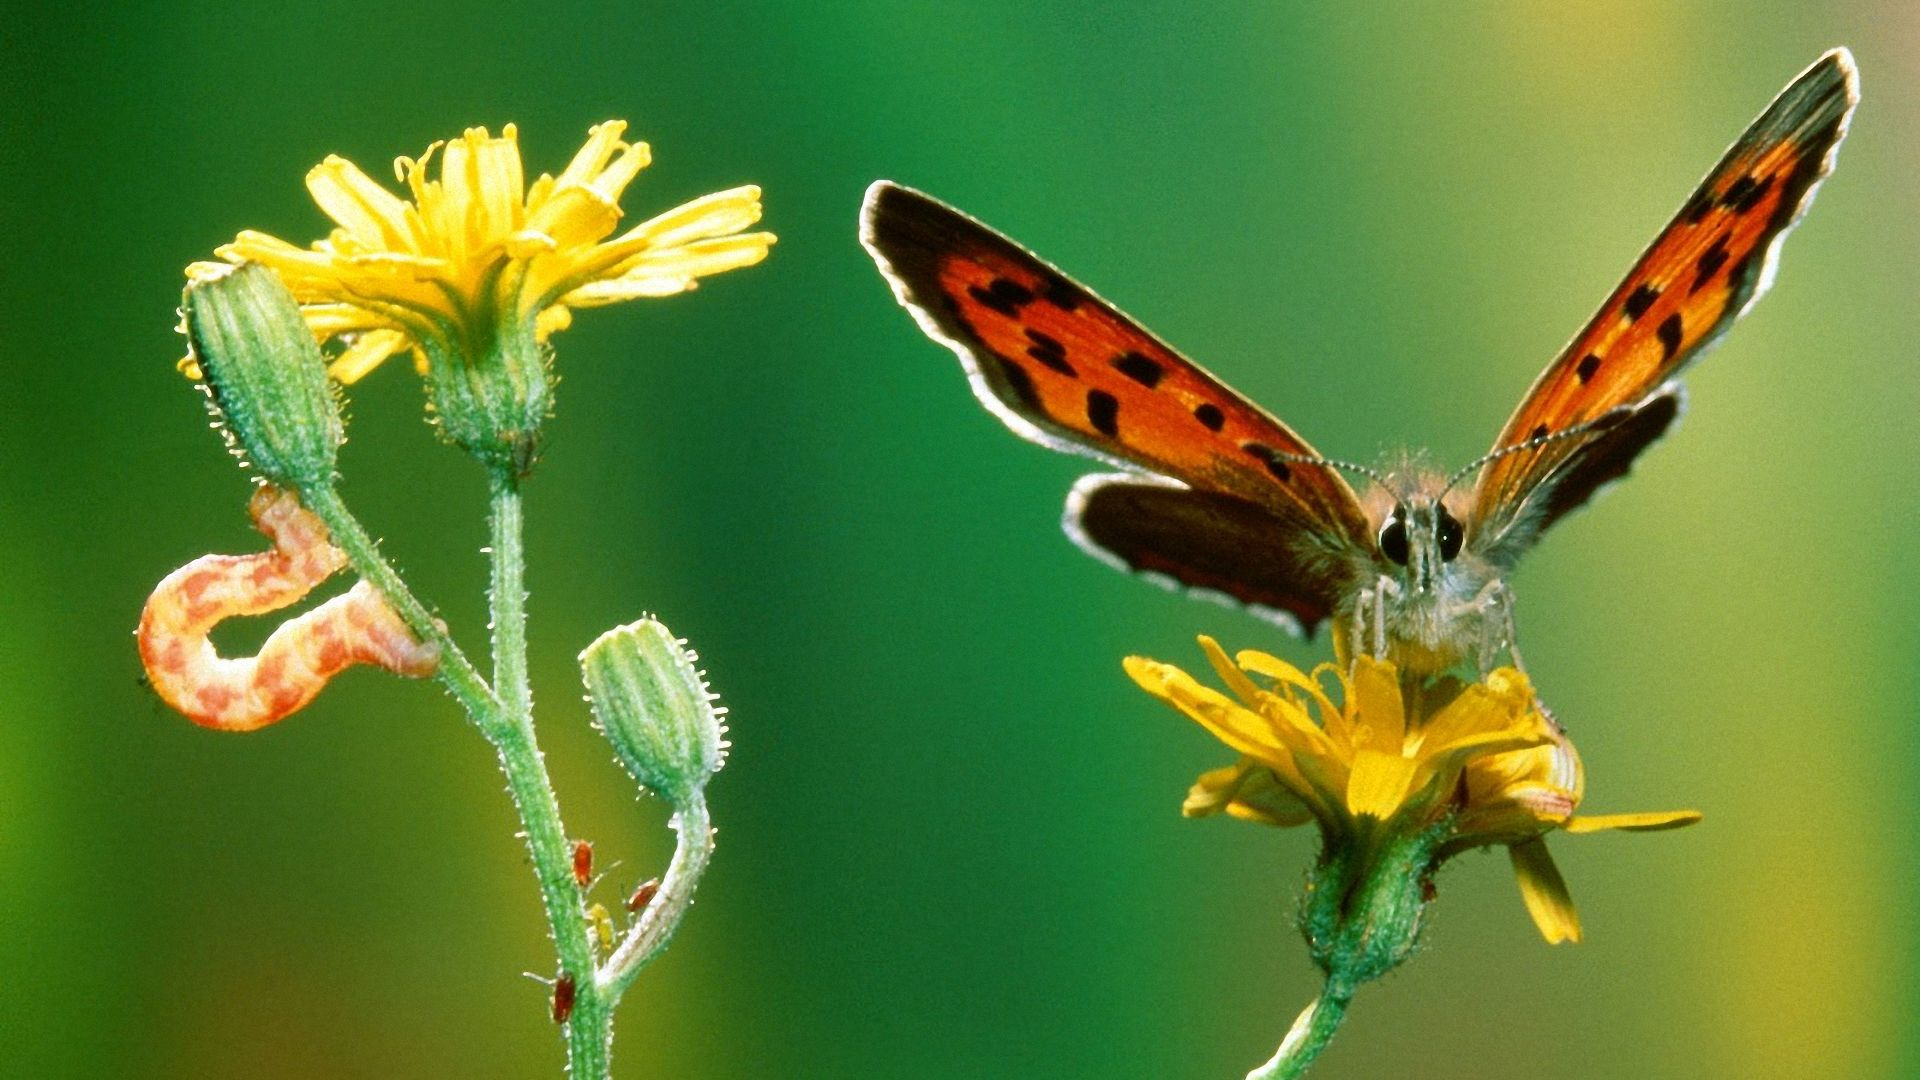 Hd Butterfly Hd Wallpapers 1080p For Your Desktop Backgrounds Caterpillar To Butterfly Hd 1920x1080 Wallpaper Teahub Io